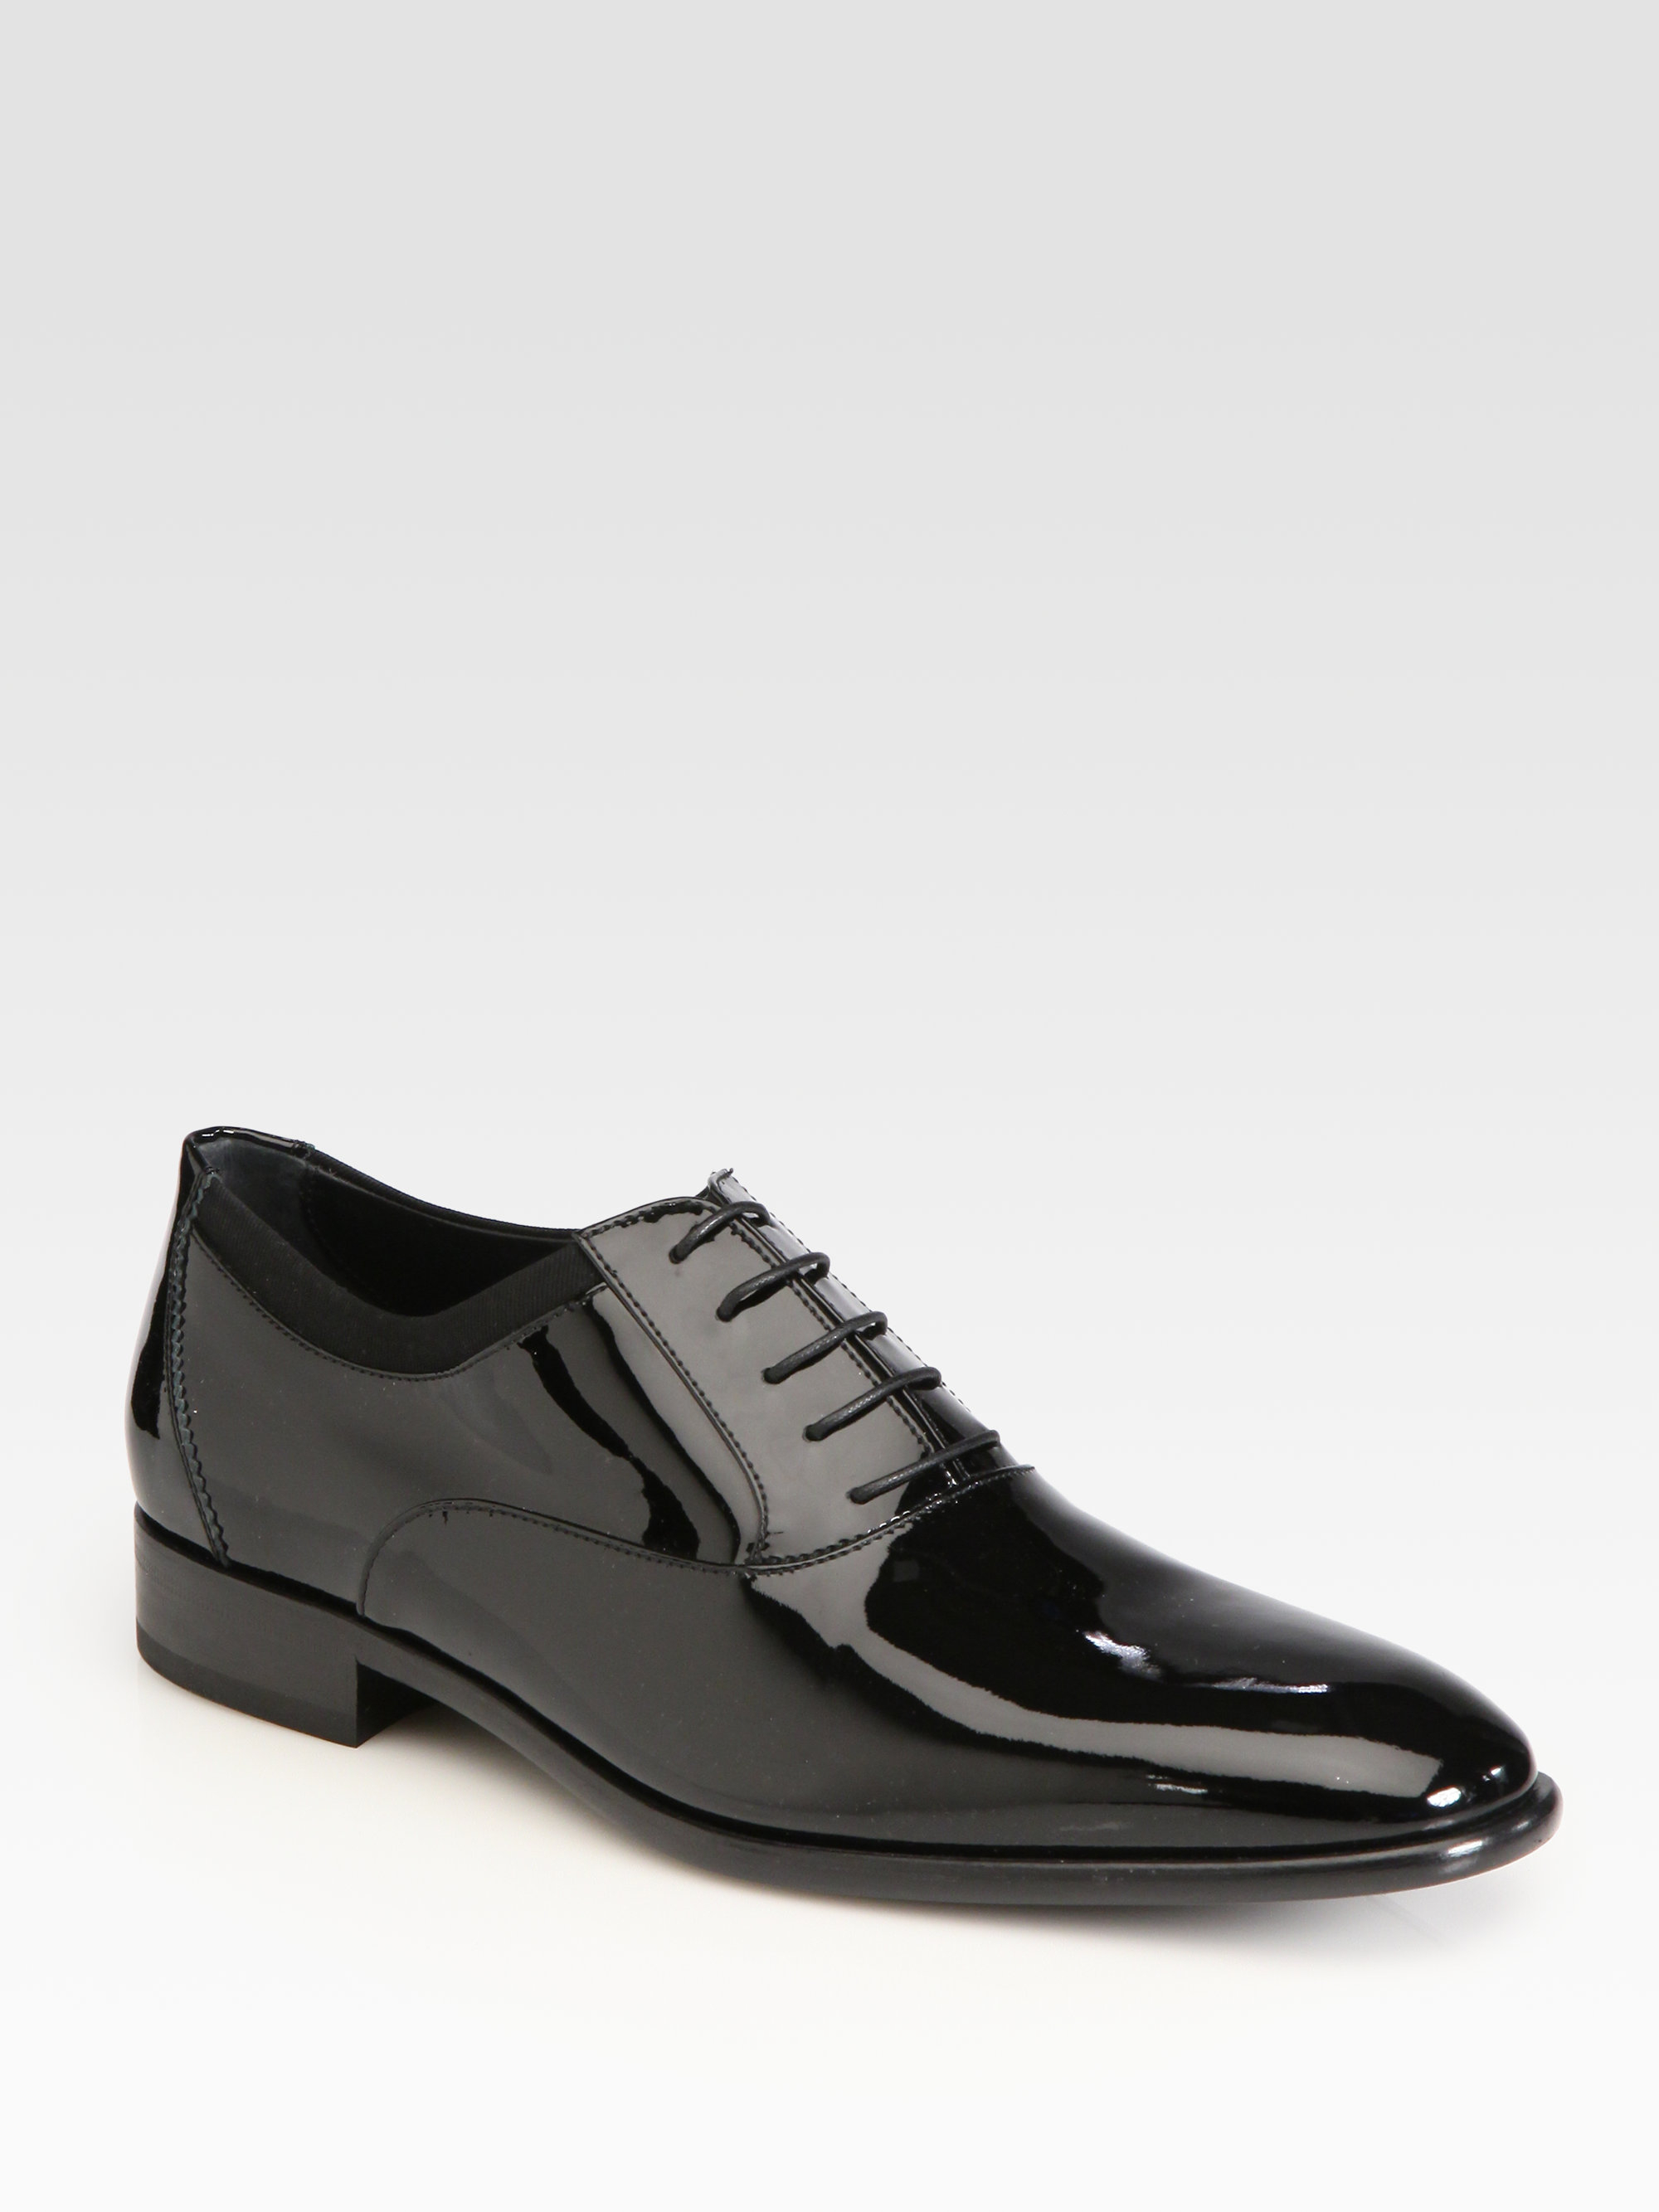 ferragamo aiden patent leather lace up shoes in black for